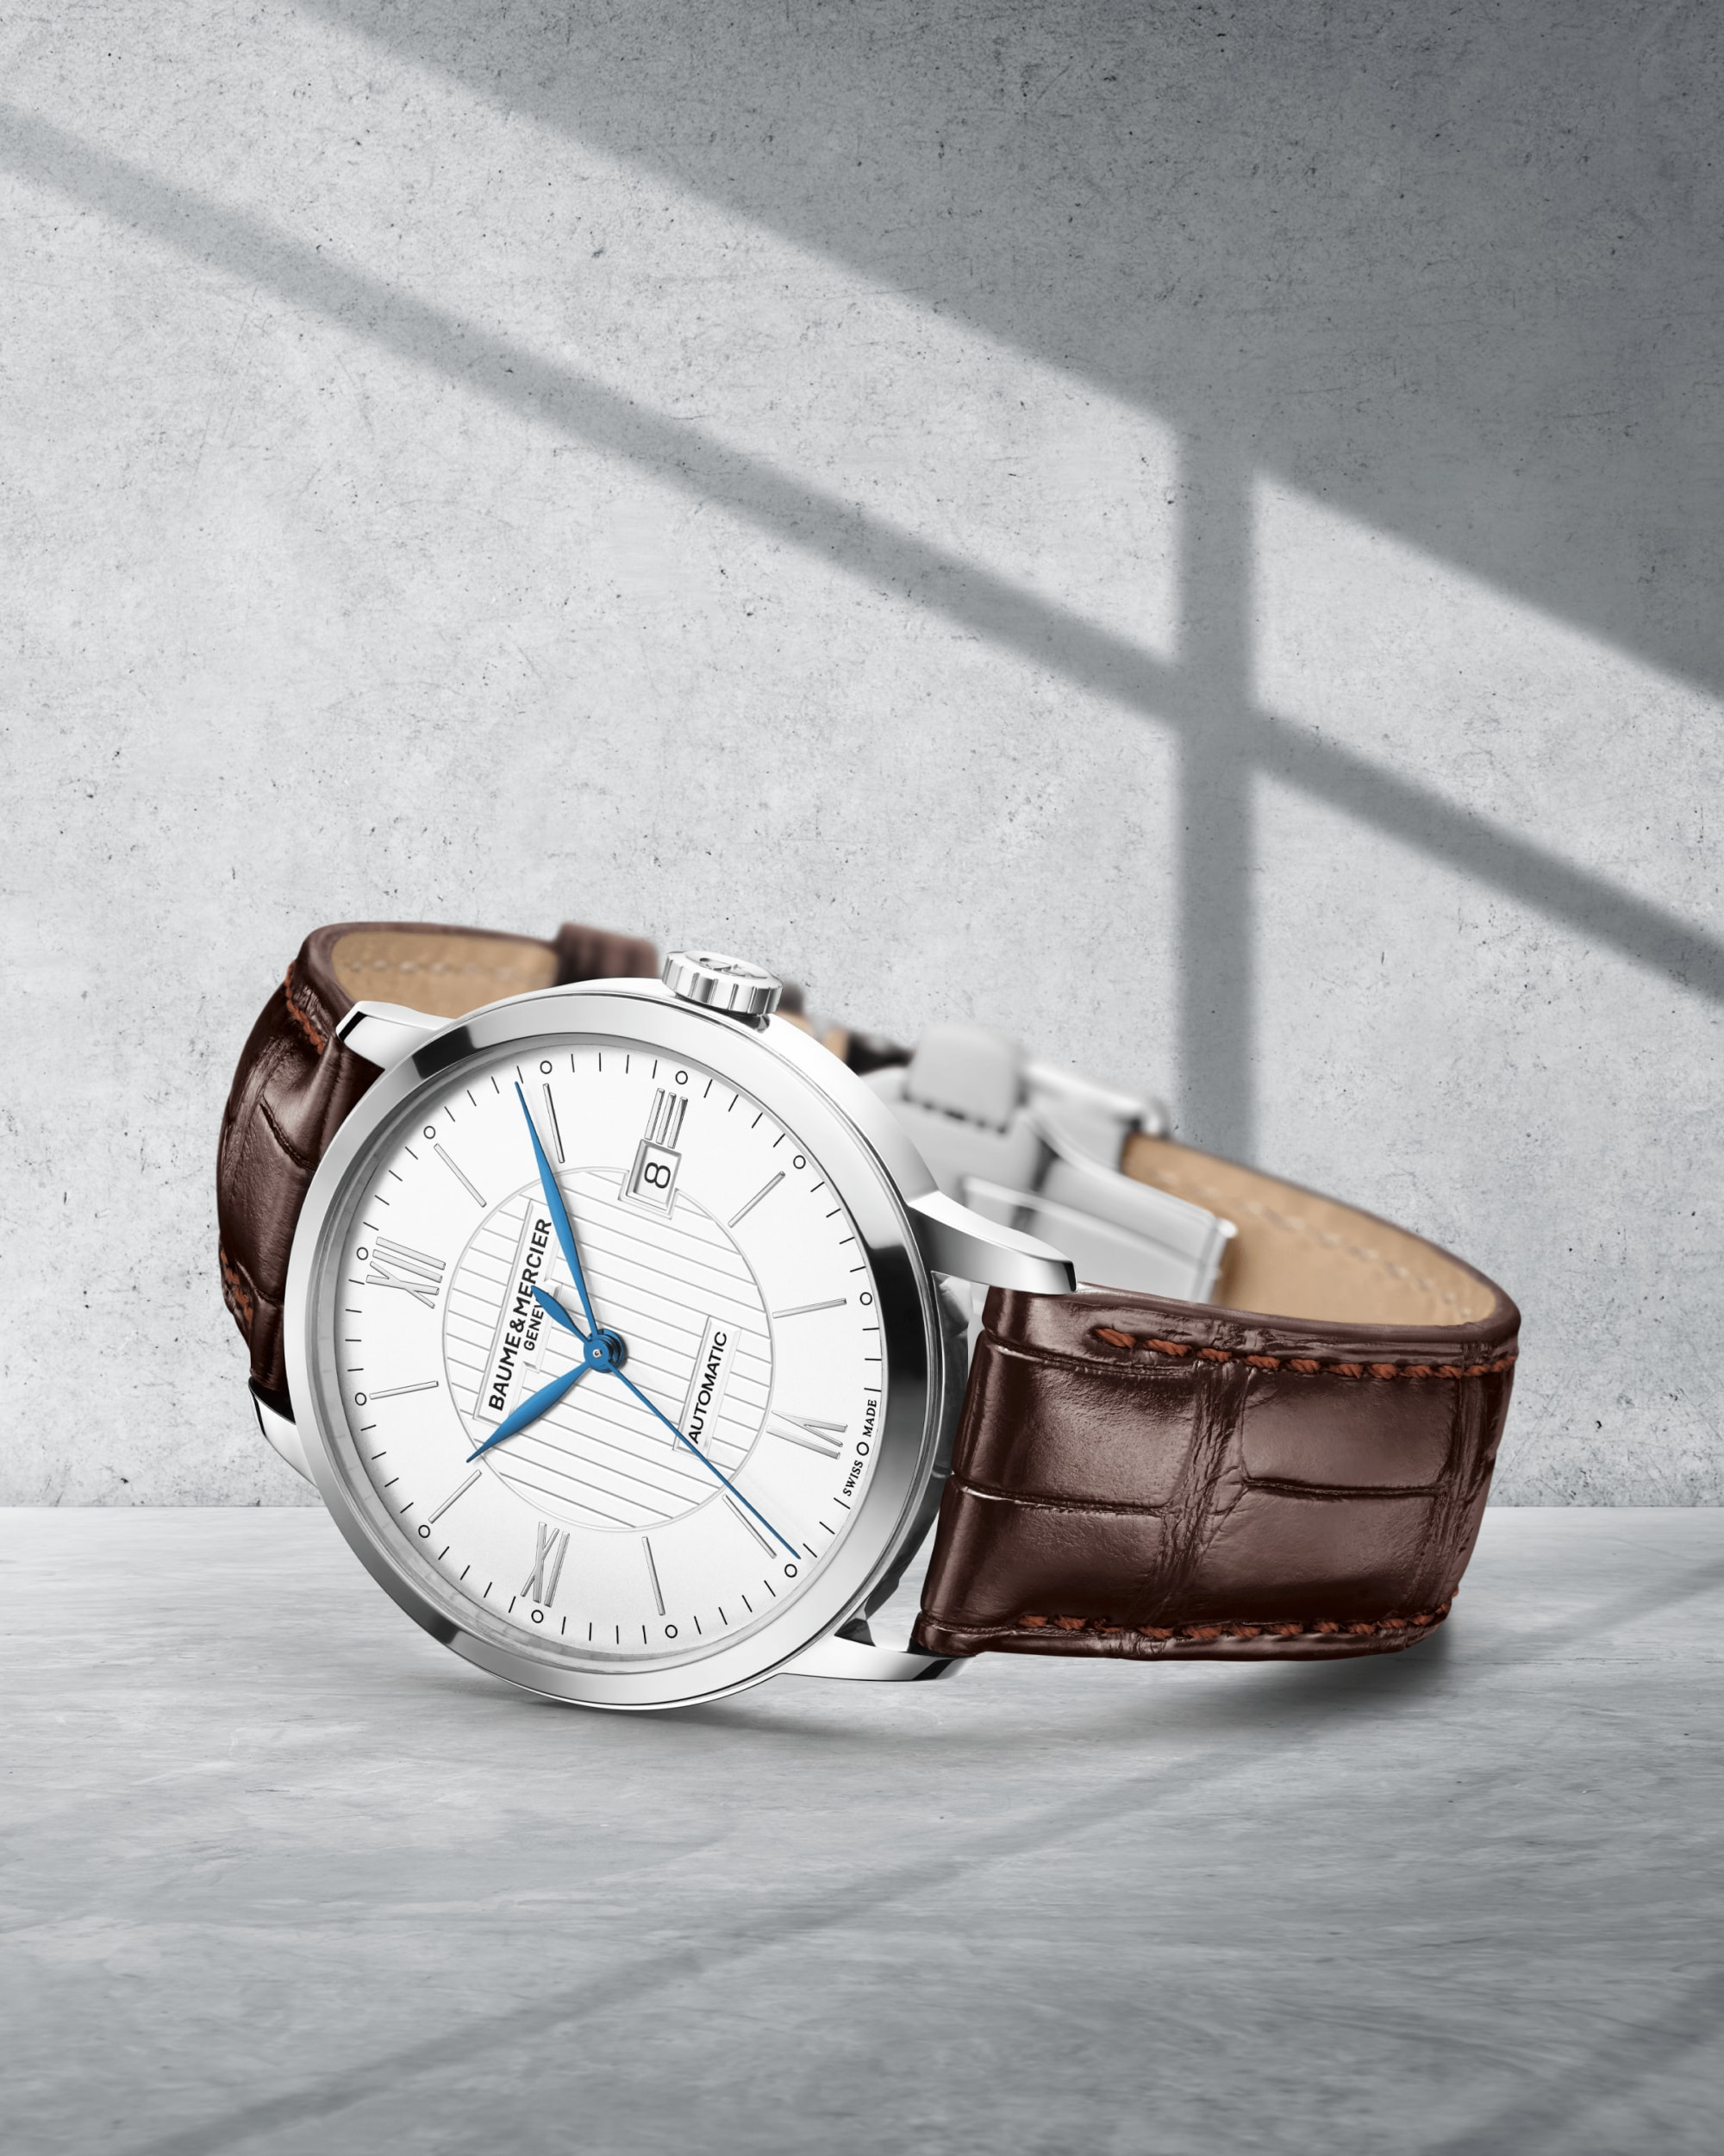 Classima 10214 Watch for men | Check Prices on Baume & Mercier alternative -